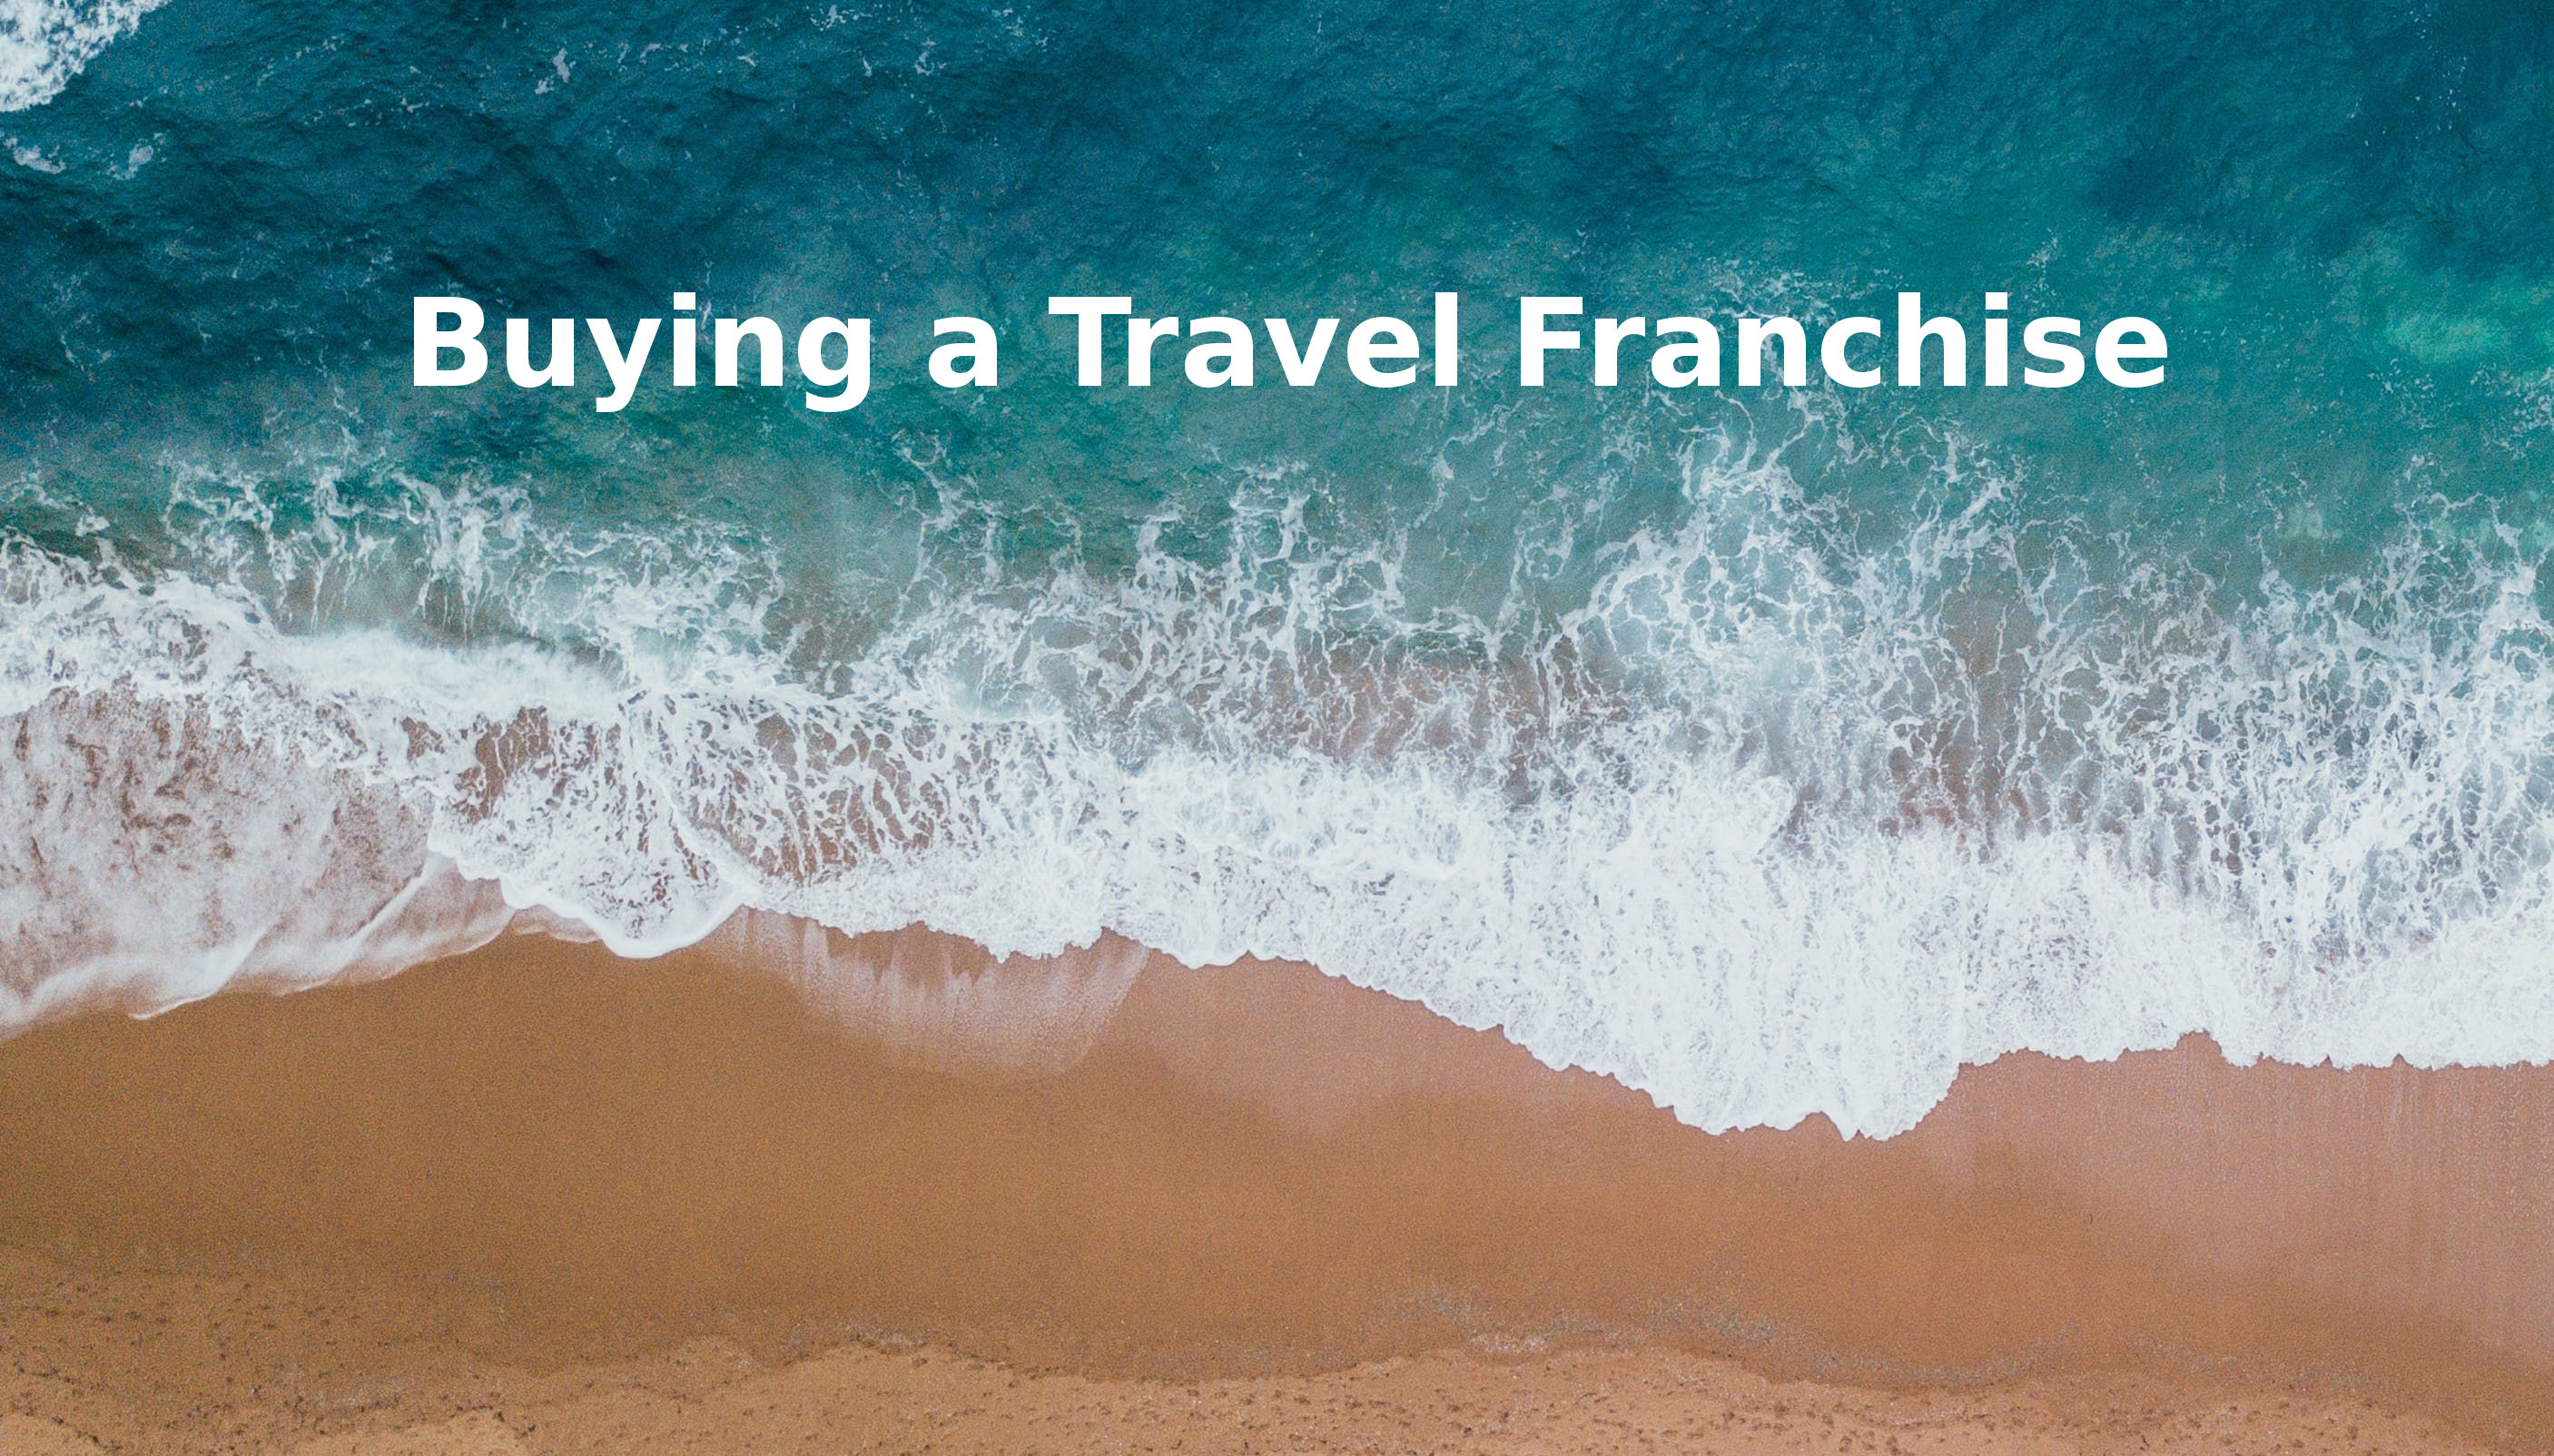 Buying a Travel Franchise